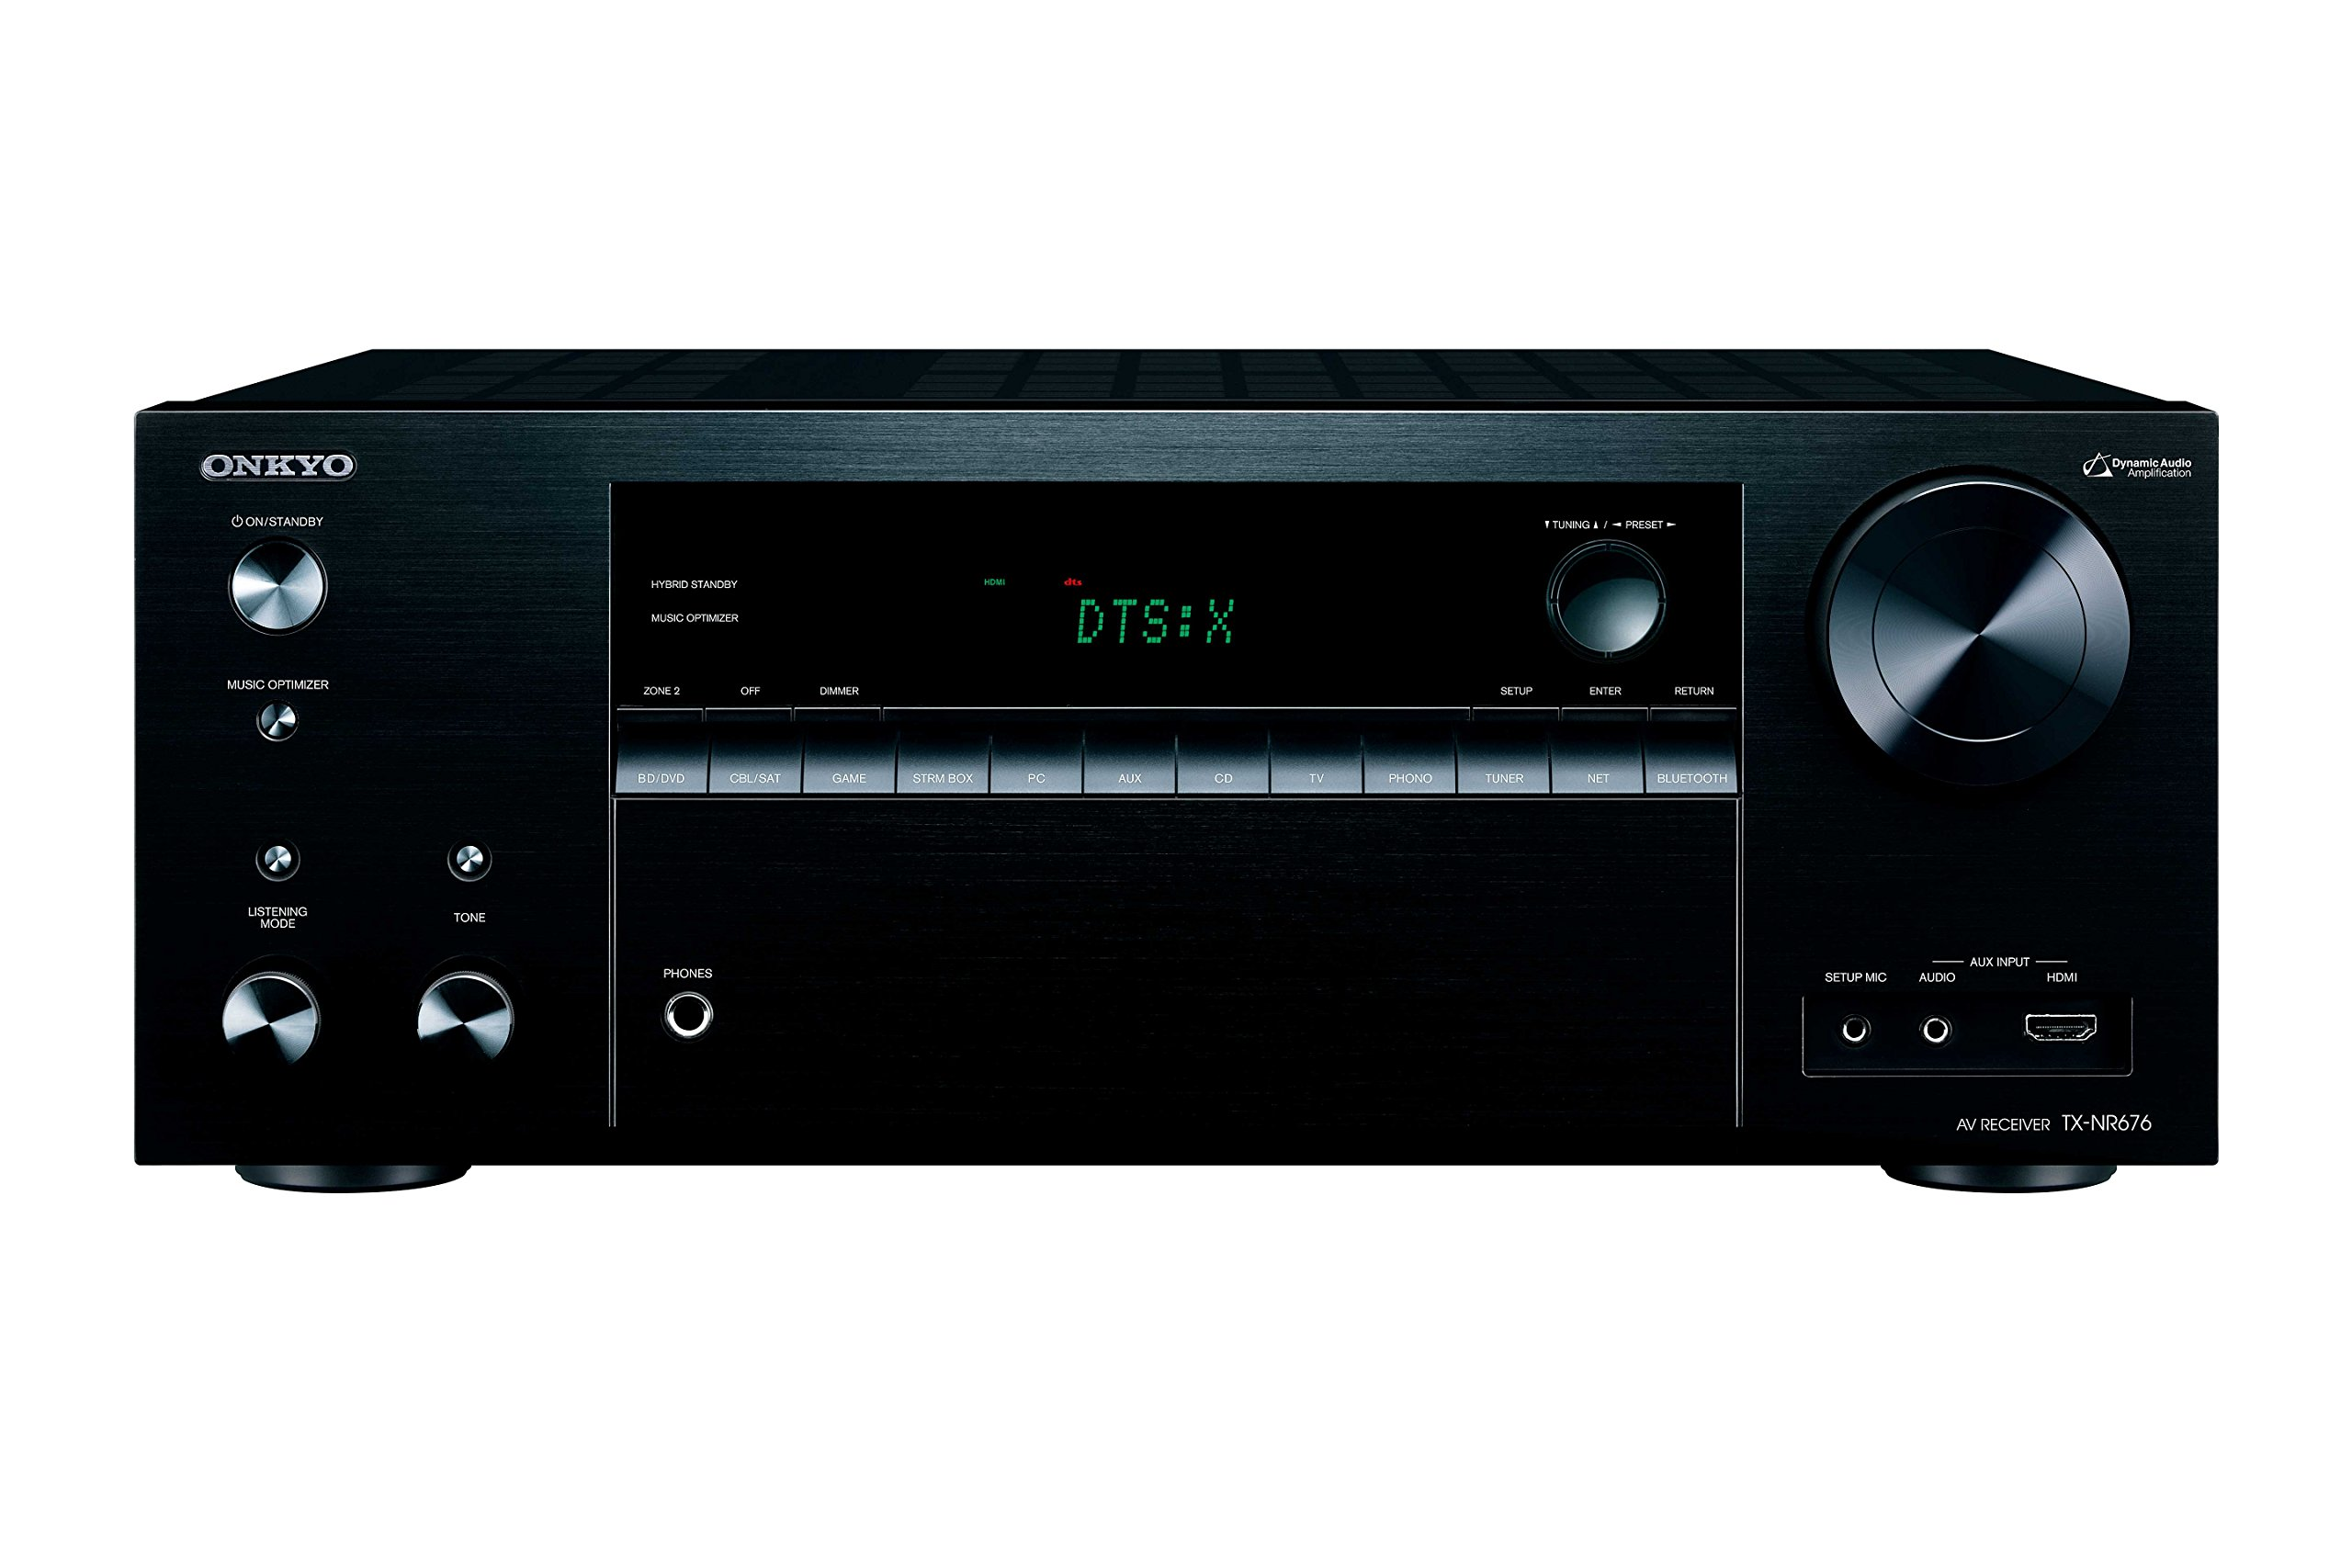 Onkyo TX-NR676 7.2 Channel Network Audio & Video Receiver by Onkyo